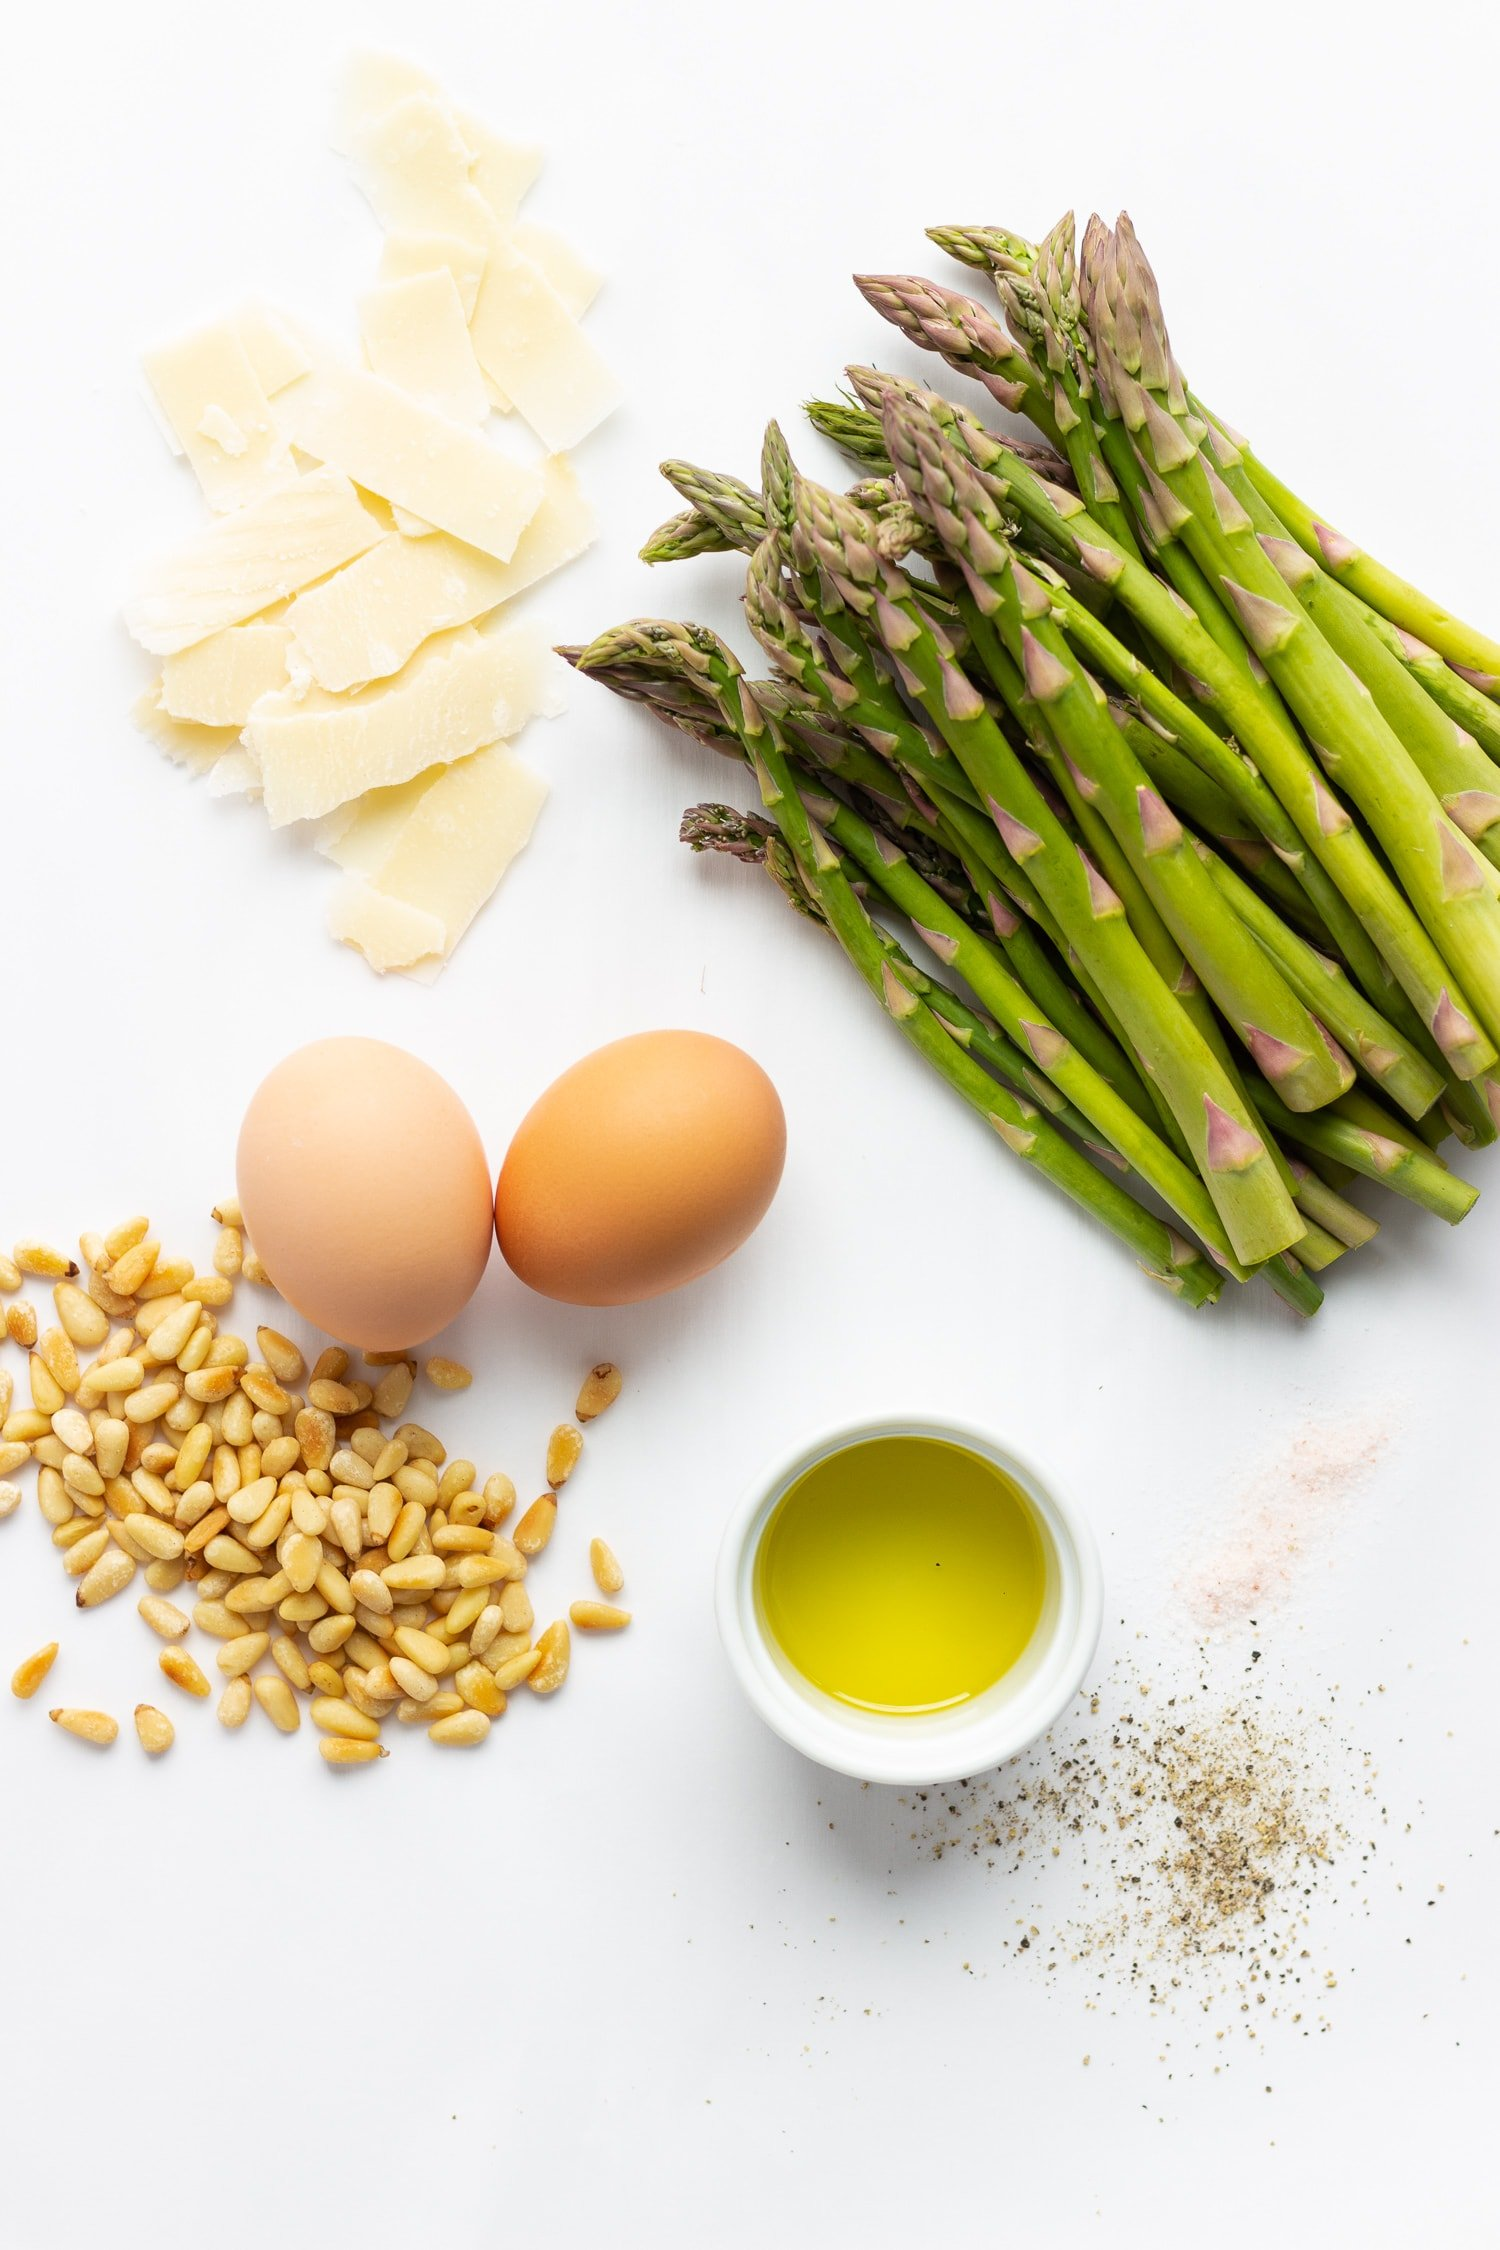 asparagus, parmesan shavings, eggs, toasted pine nuts, small white bowl of olive oil, himalayan salt and freshly ground pepper on a white surface